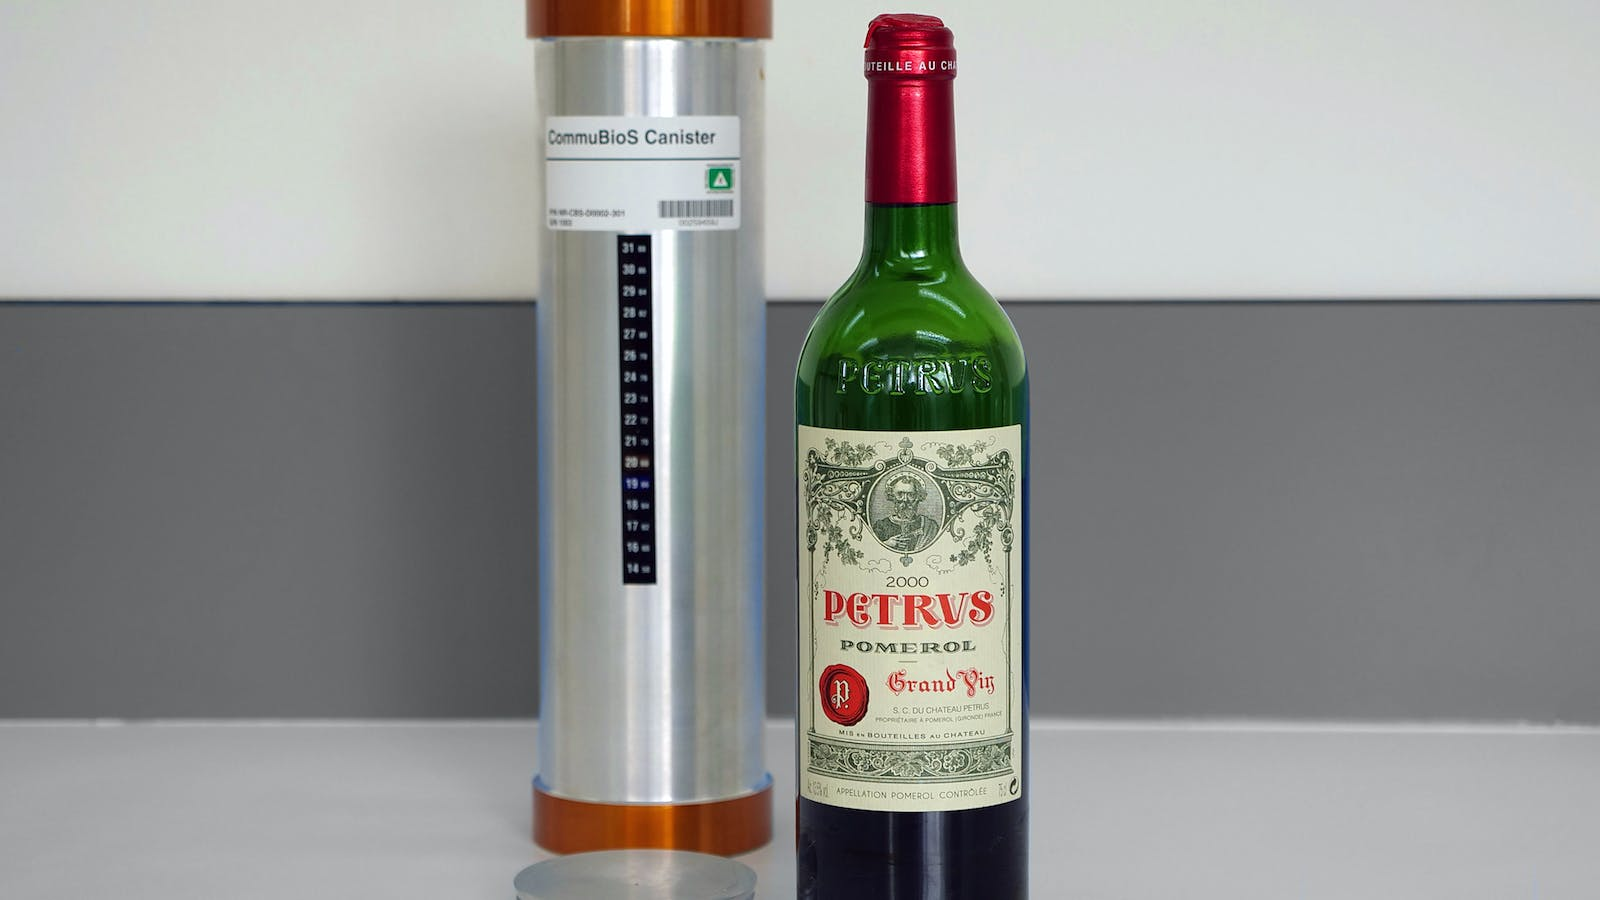 Pétrus in Space: A Comparative Tasting of Terrestrial and Interstellar Bordeaux